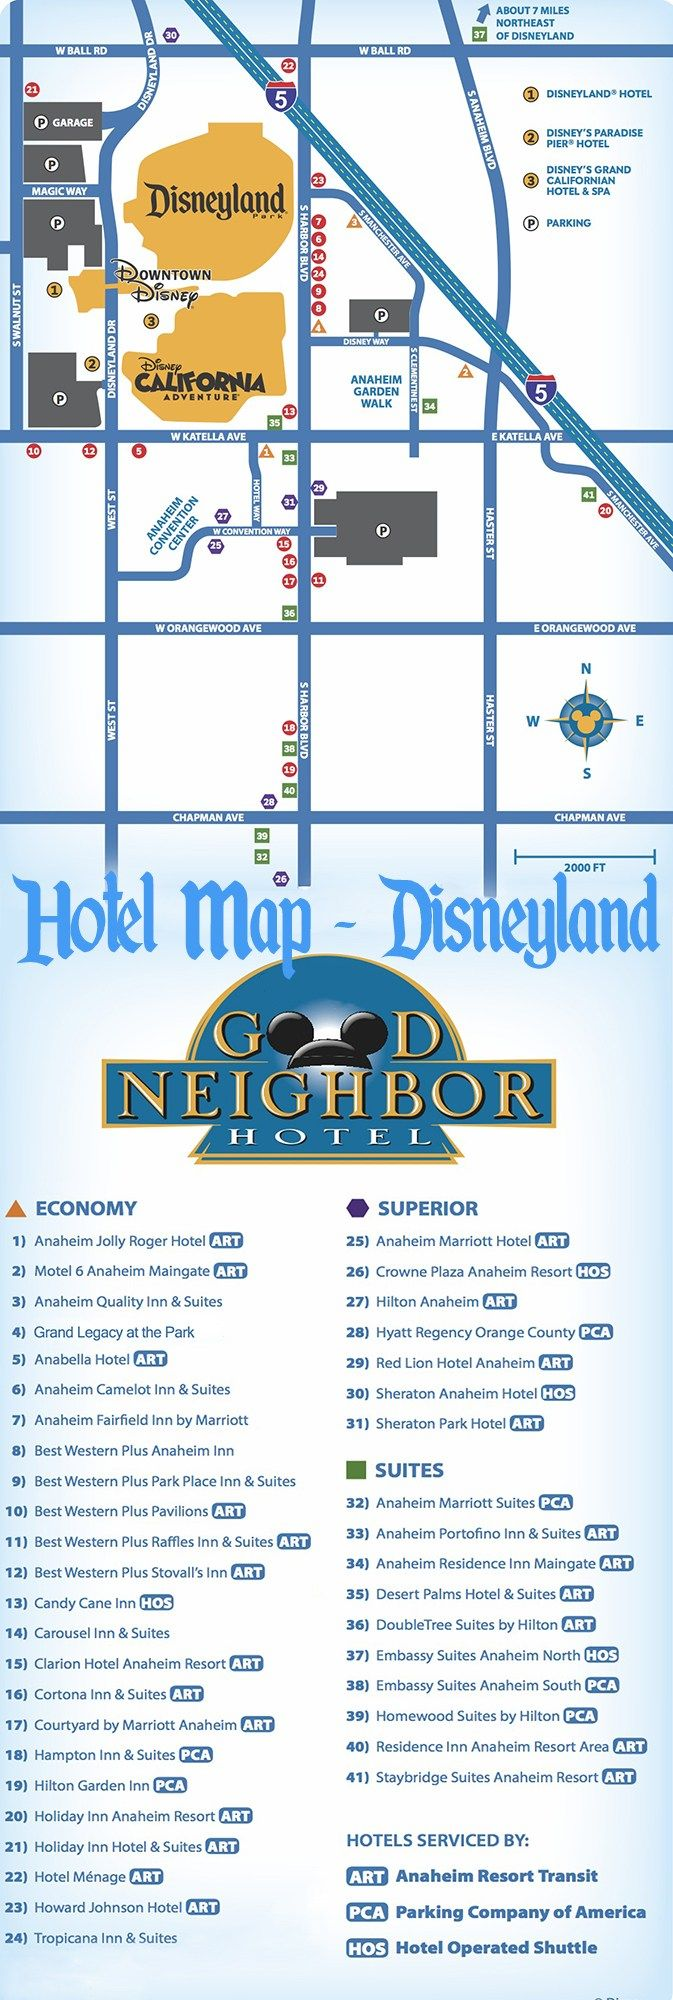 This post ranks & reviews the best and worst hotels in Anaheim near Disneyland, with pros & cons for each. Room photos and a numerical score factor